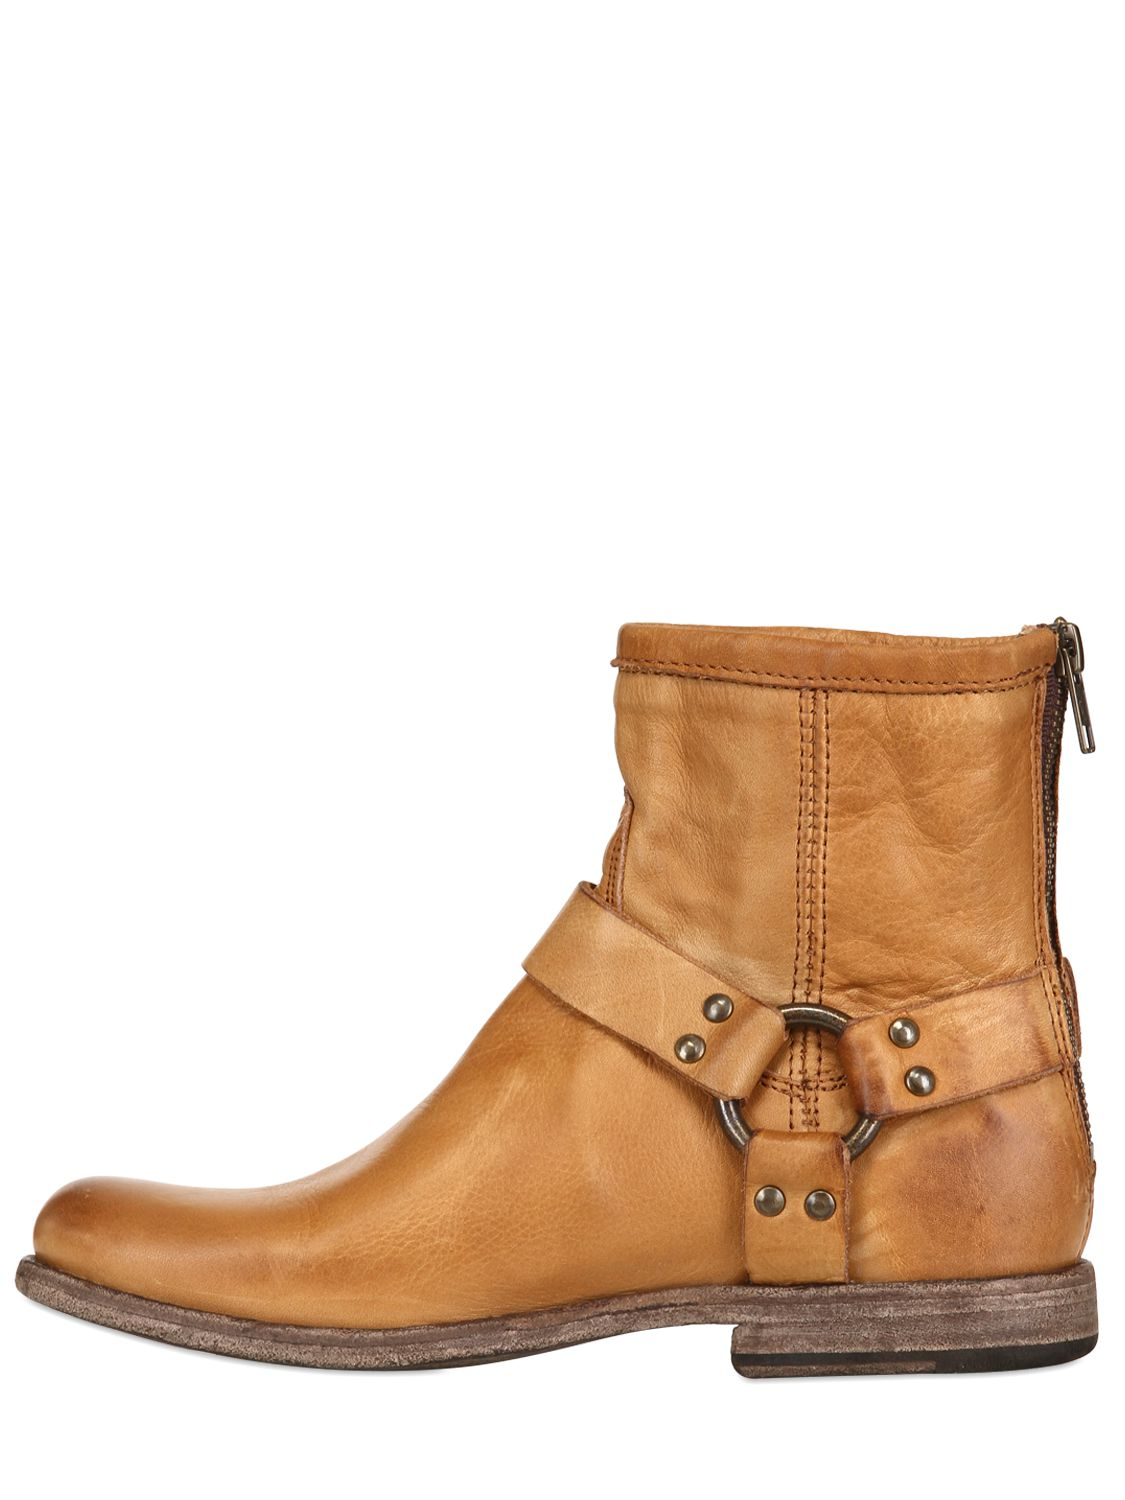 Lyst Frye Phillip Harness Leather Ankle Boots In Brown